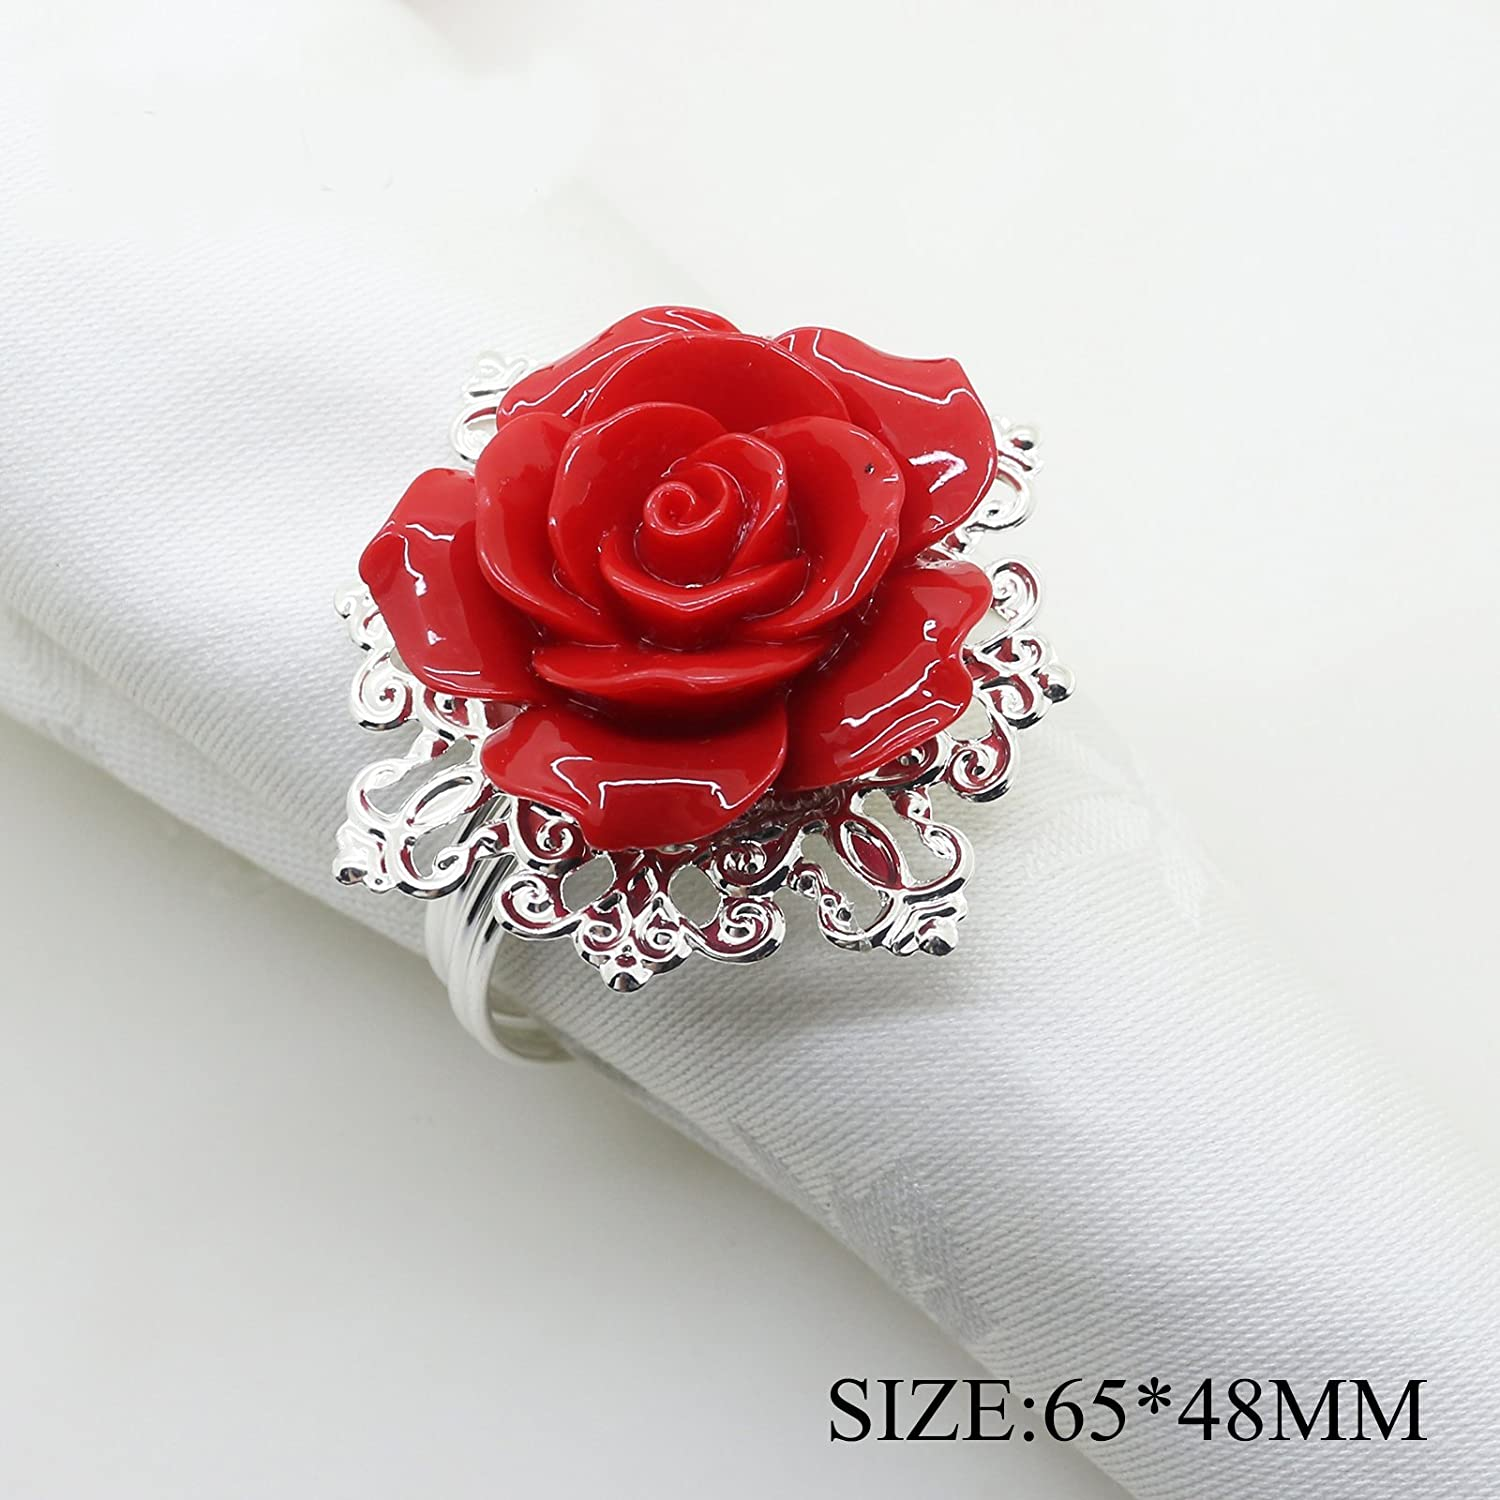 10pcs Red Rose Decorative Silver Napkin Ring Serviette Holder for Wedding Party Dinner Table Decor Many Color Available For Christmas Table Yomoo